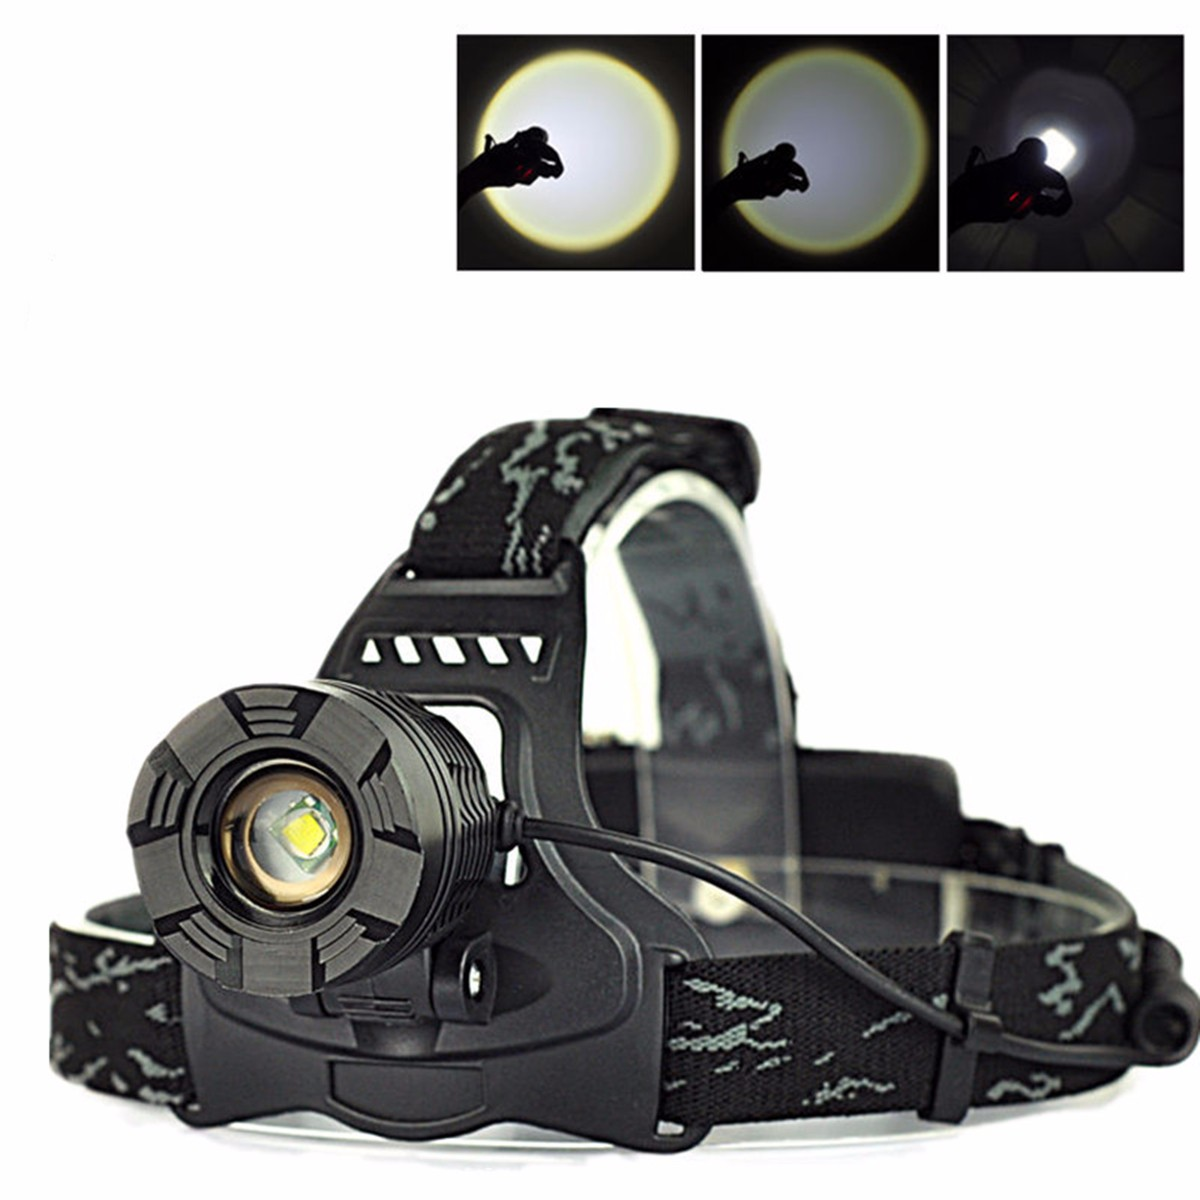 Elfeland 3500 Lumen T6 LED Zoomble Rechargeable Headlight Headlamp Flashlight Torch Waterproof 3 Headlights & Lights Modes For Hiking Camping Riding Fishing